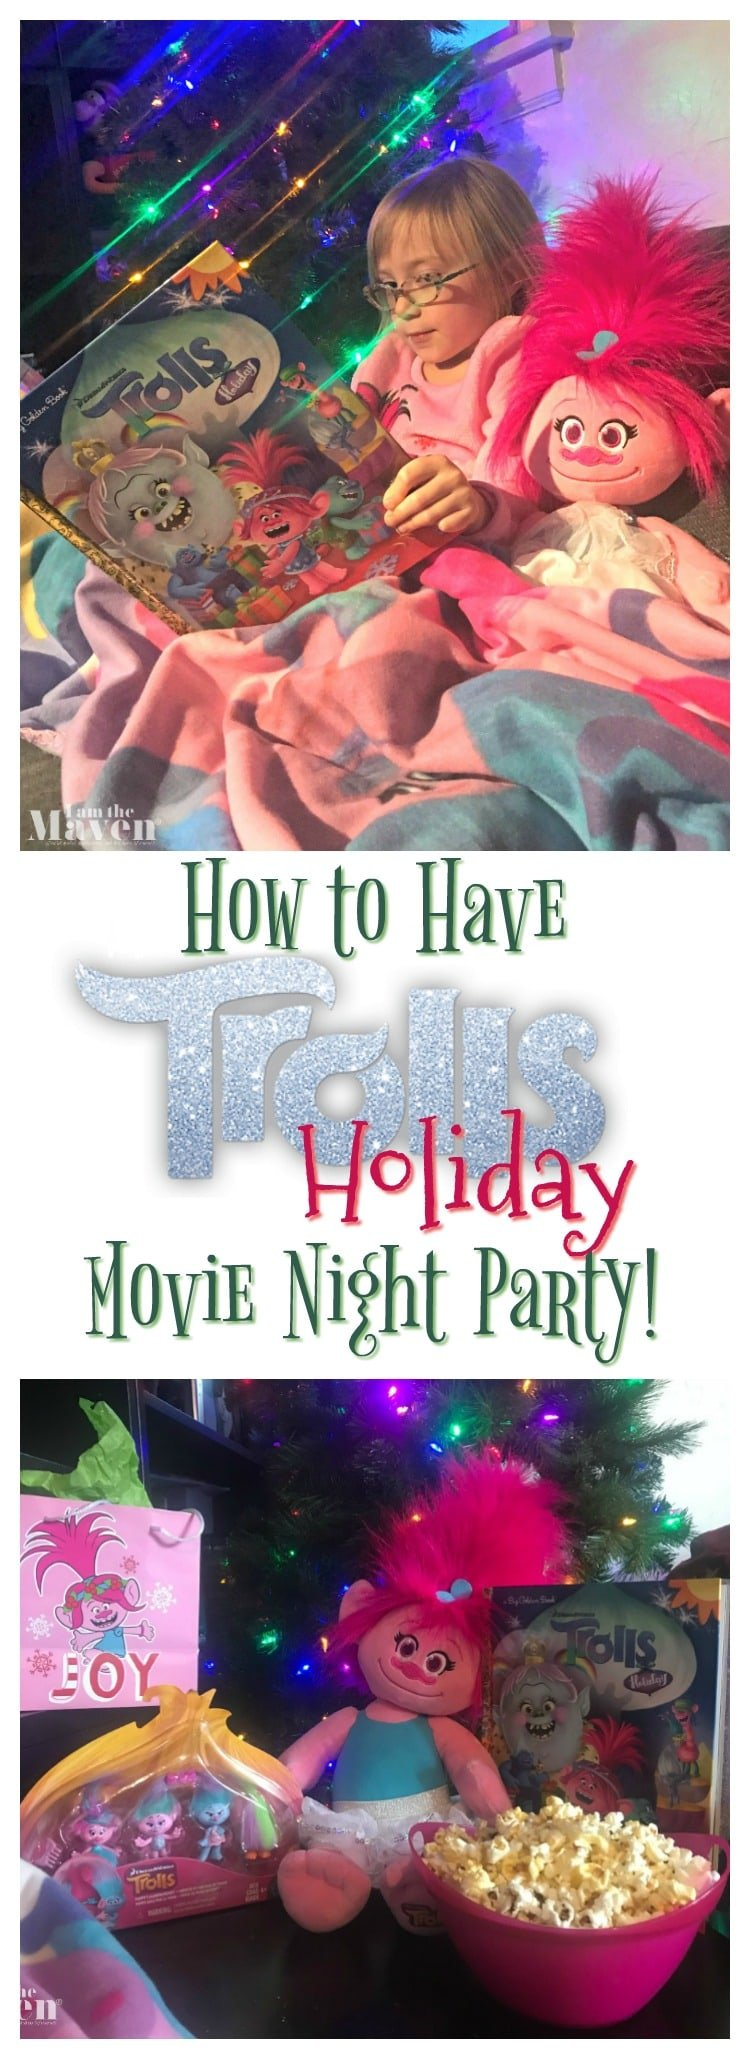 How to have a Trolls Holiday movie night party!